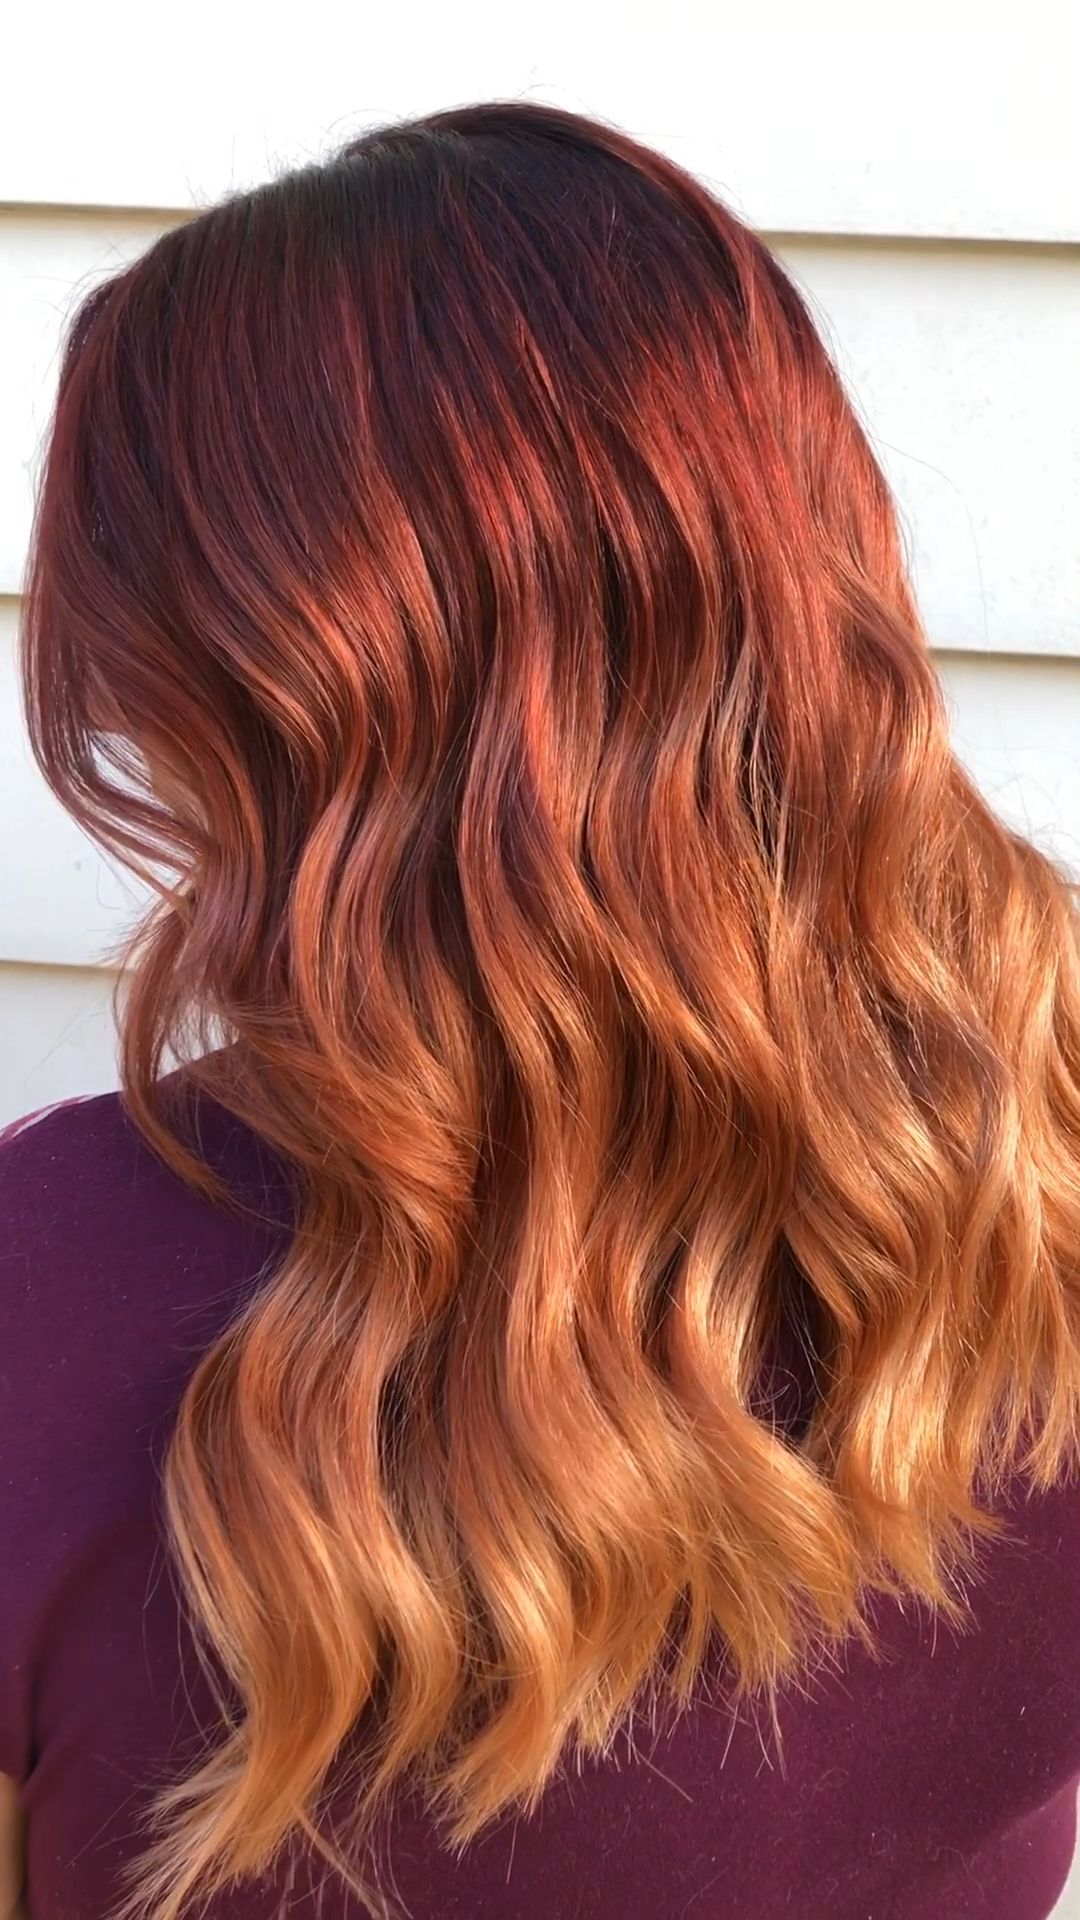 20 auburn hair Videos ideas